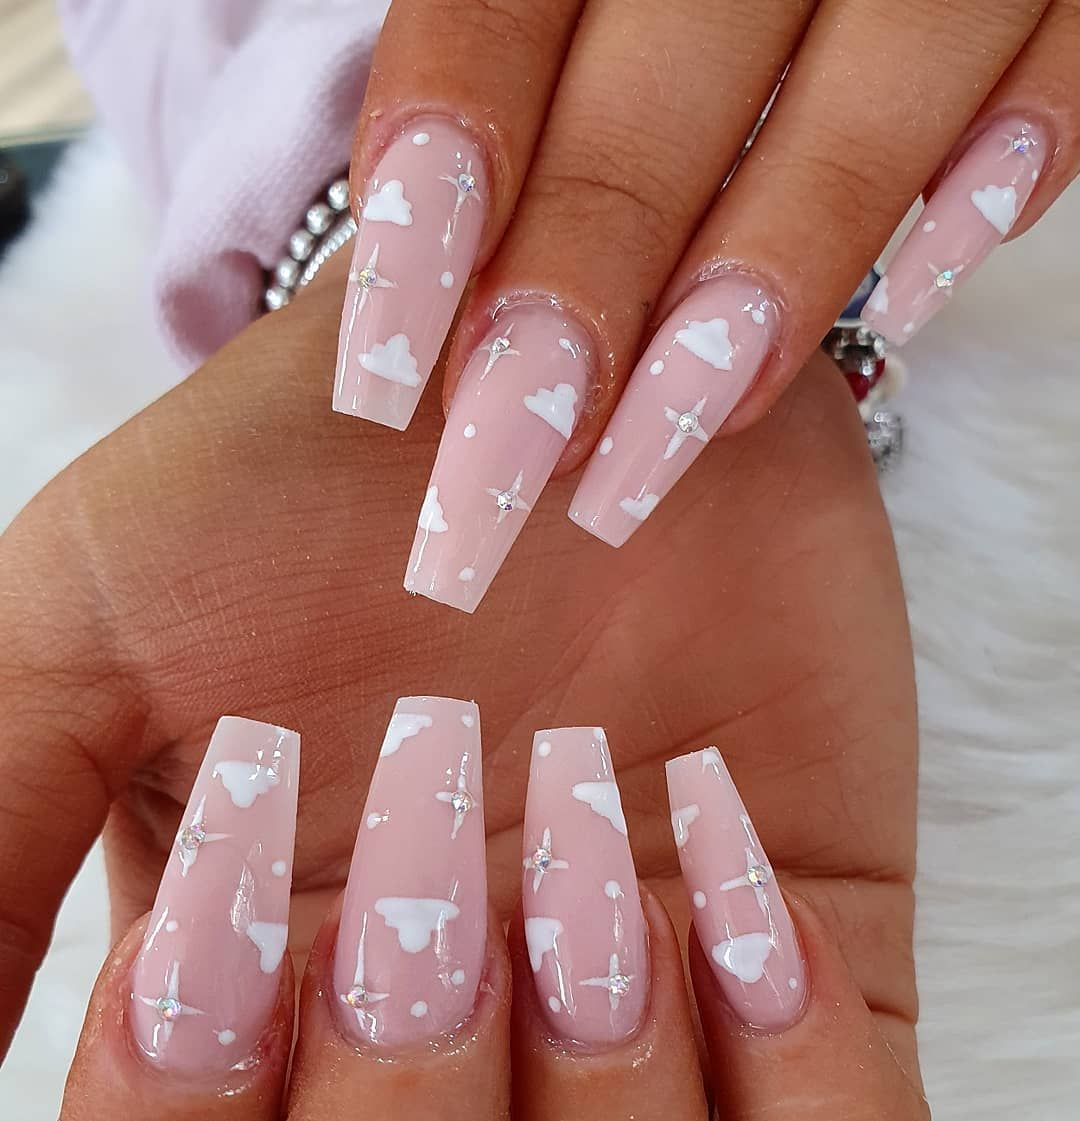 Handpainted Clouds And Stars For Alexajayne In This Dreamy Set Using Sworovsk Nails Swag Nails Pink Acrylic Nails Best Acrylic Nails